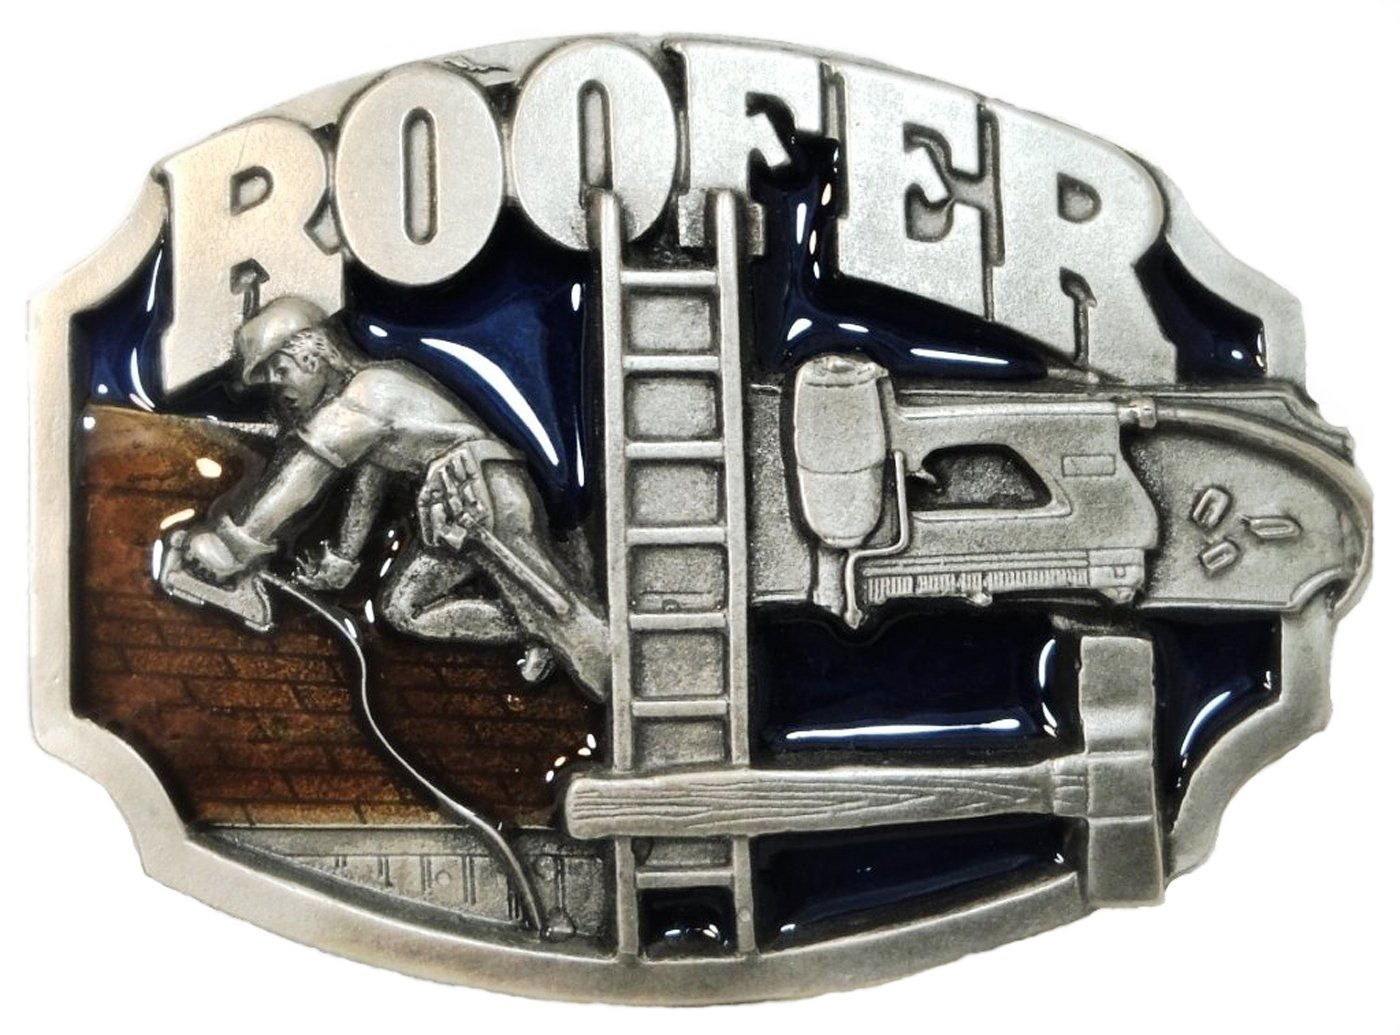 ROOFER OCCUPATION BELT BUCKLE BY SISKIYOU